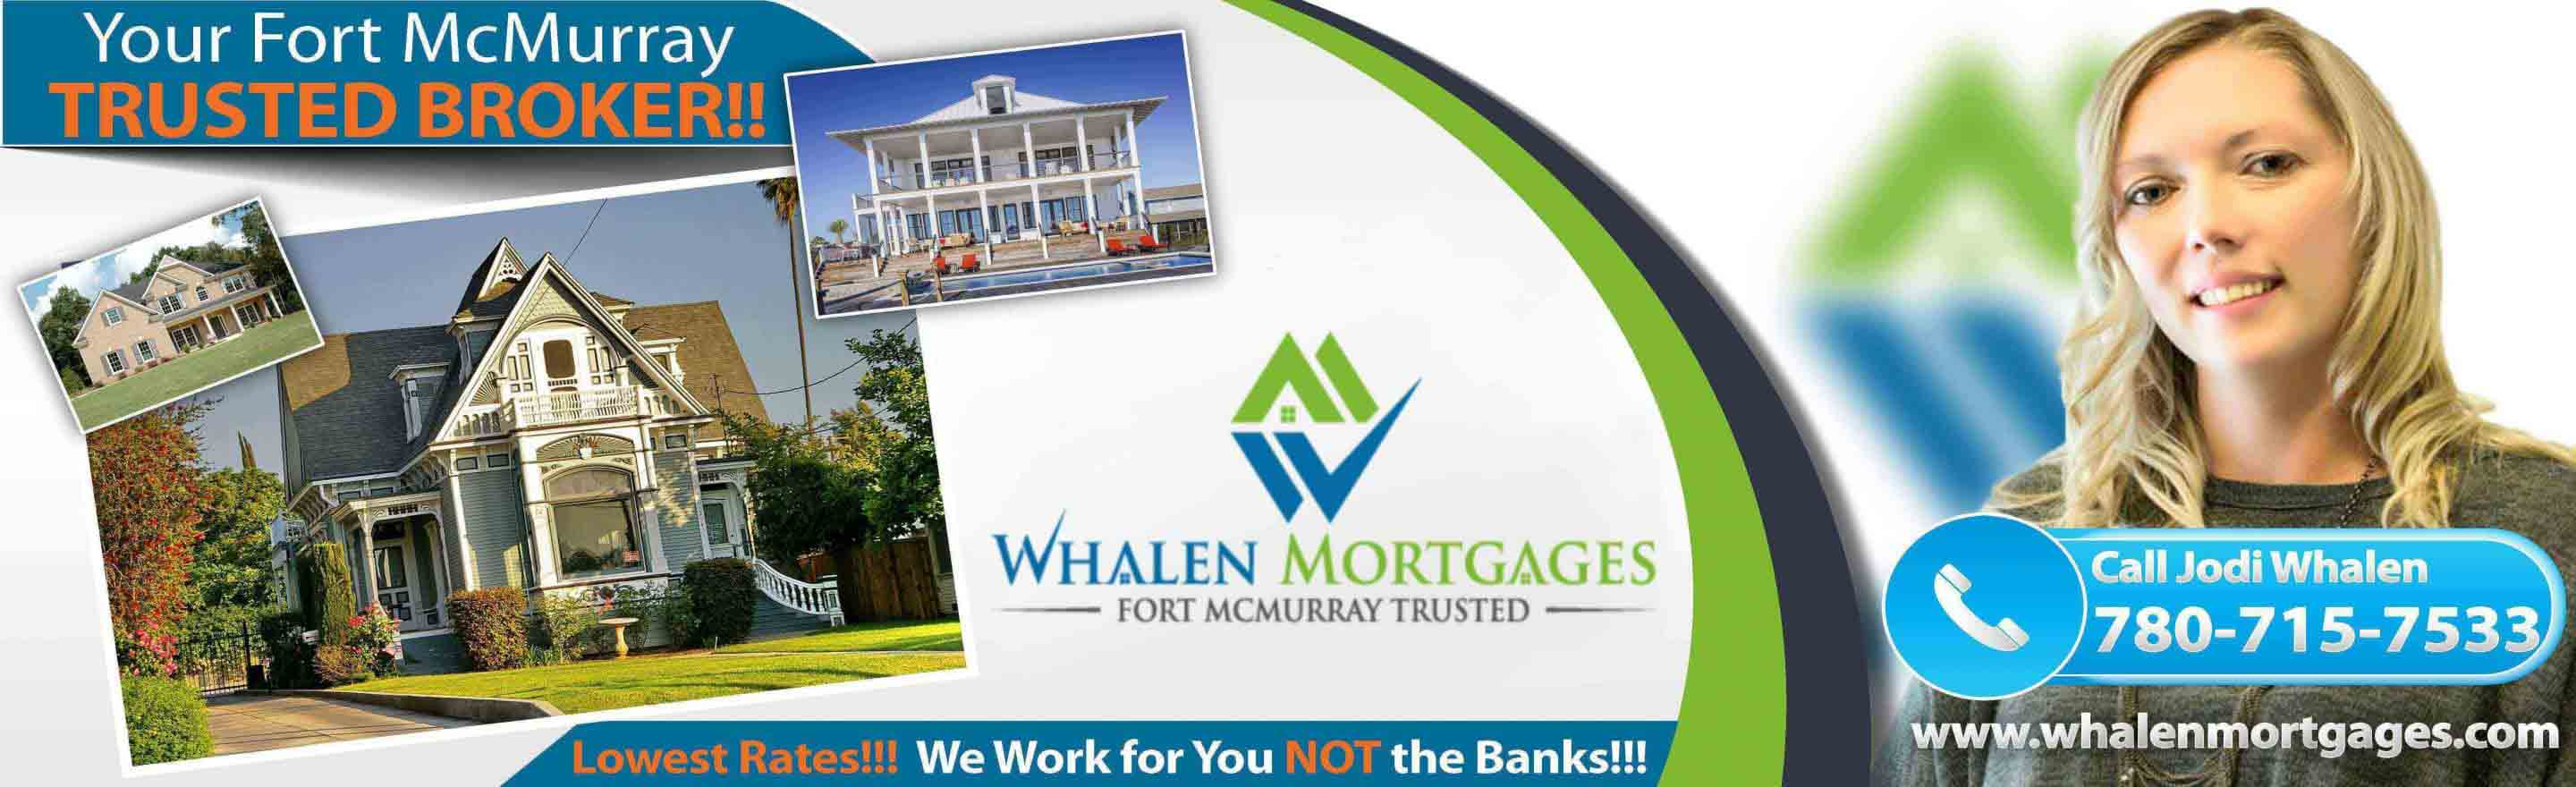 Mortgage Broker Fort McMurray best rates